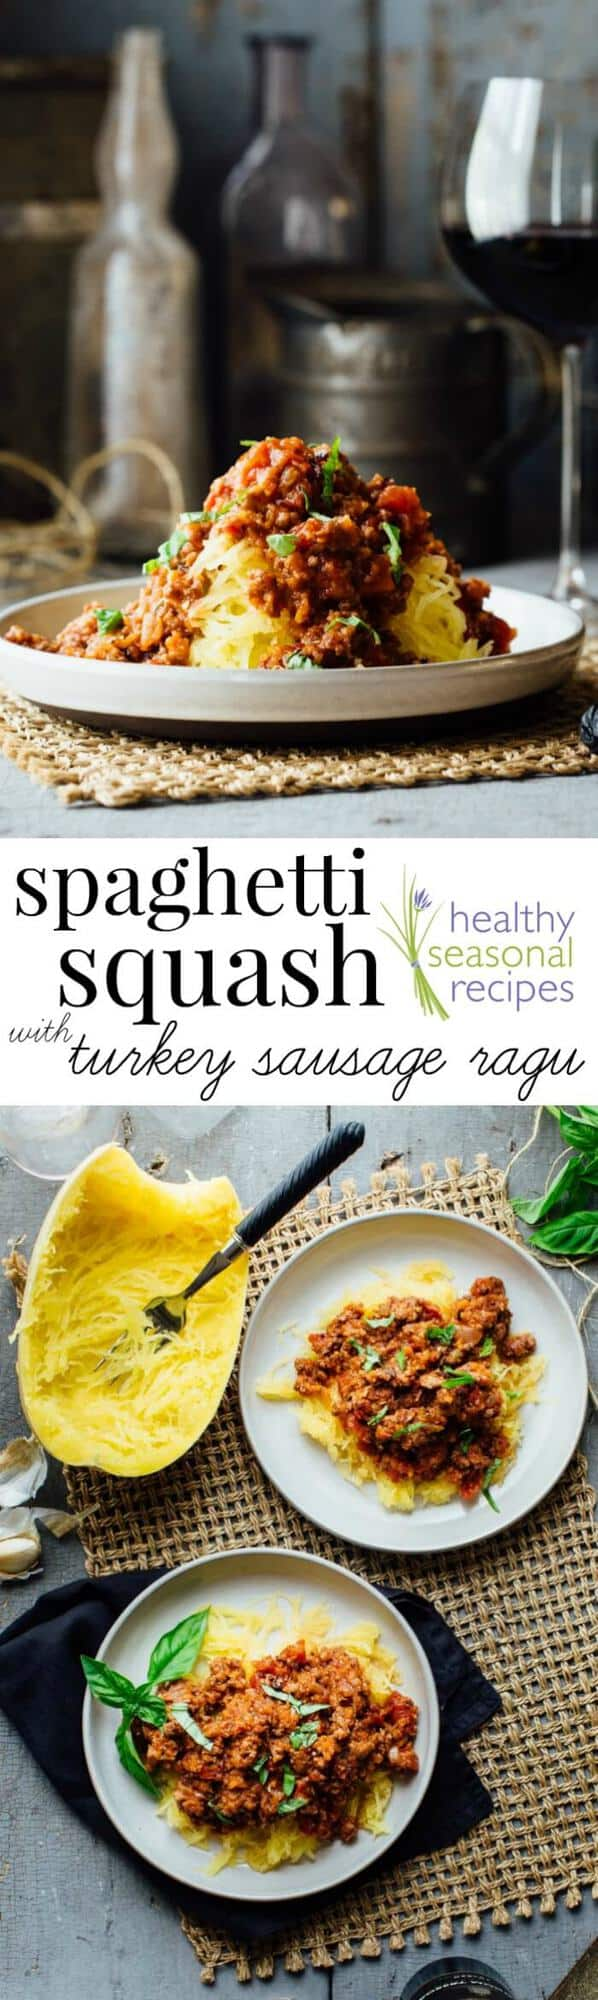 spaghetti squash with meat sauce and basil in a bowl with text overlay